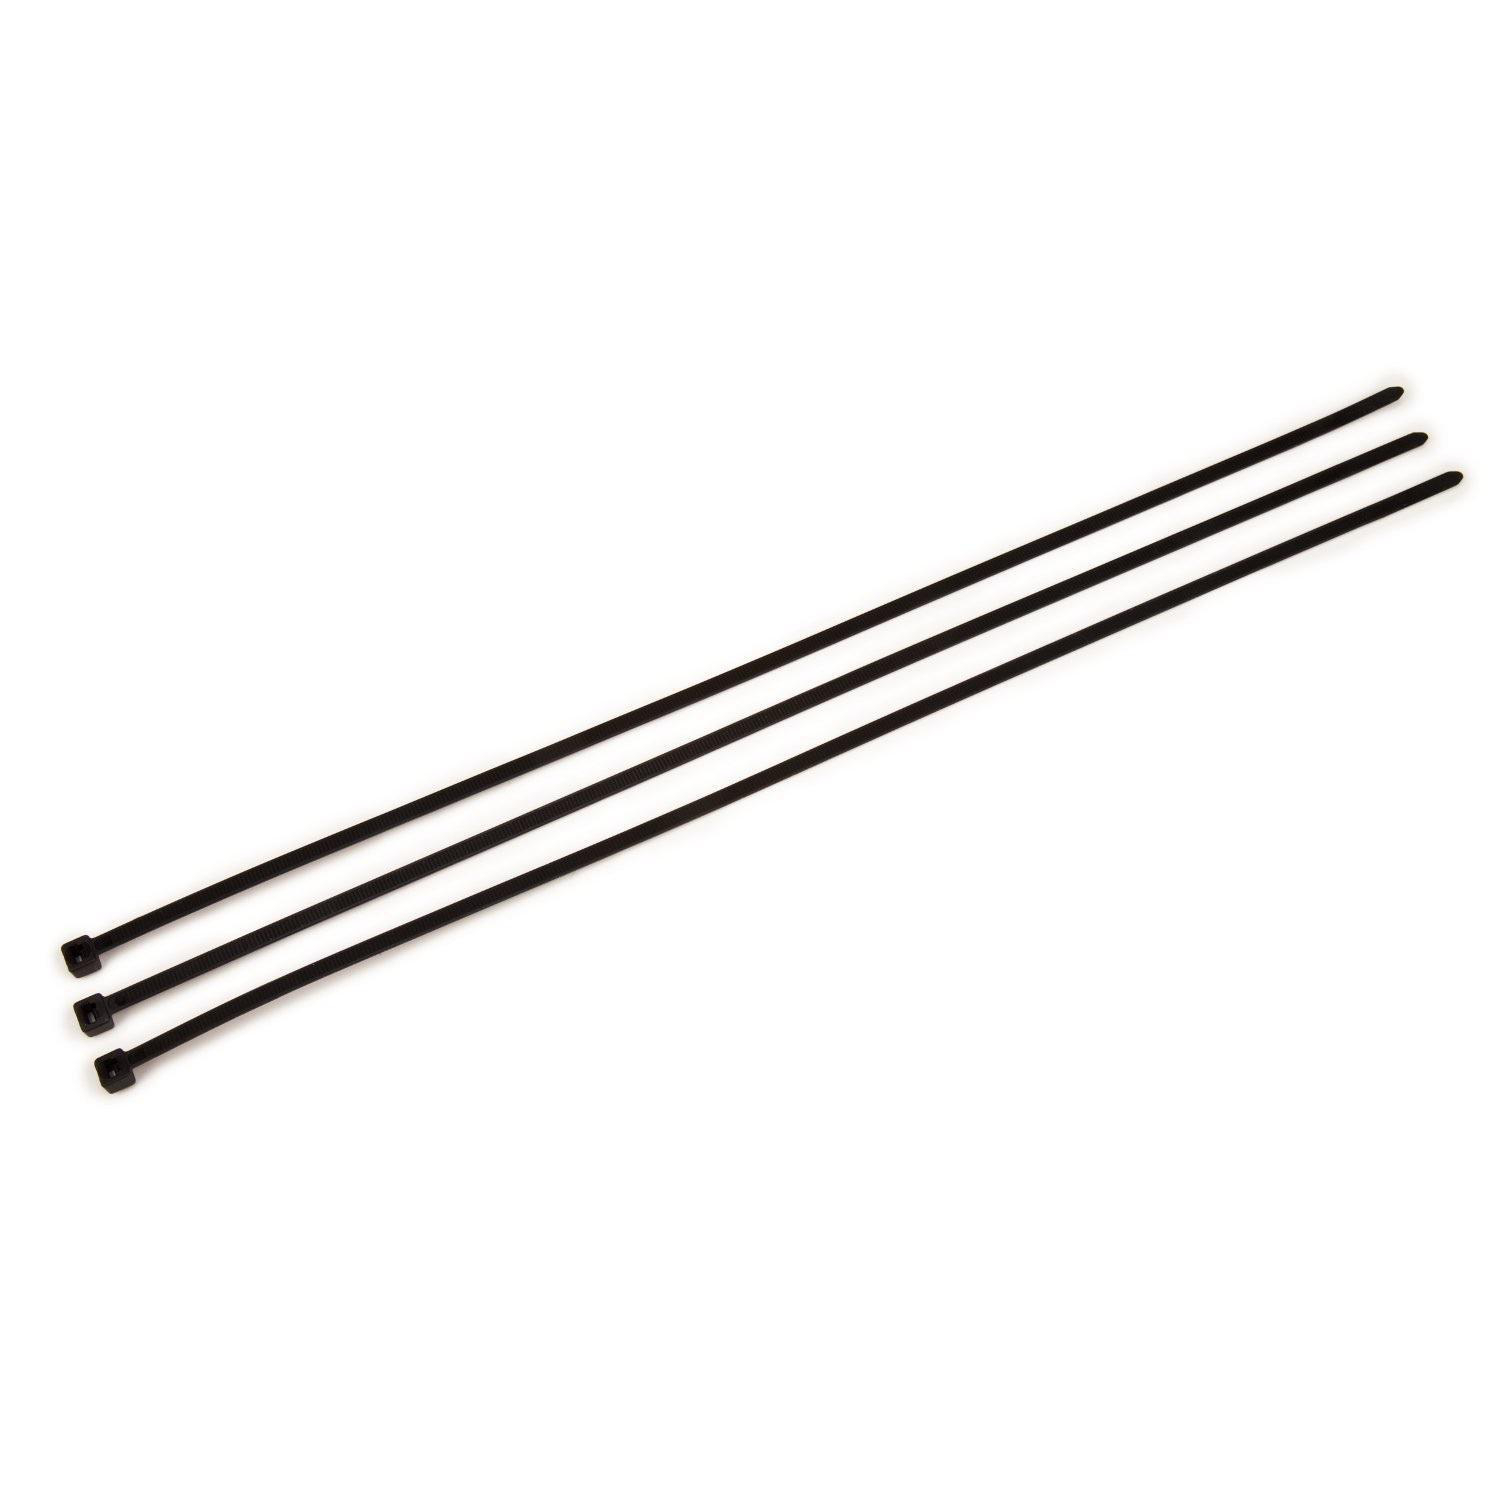 3m Ct15bk50 C Cable Tie 50 Lb 15 In L Polyamide Black Standard